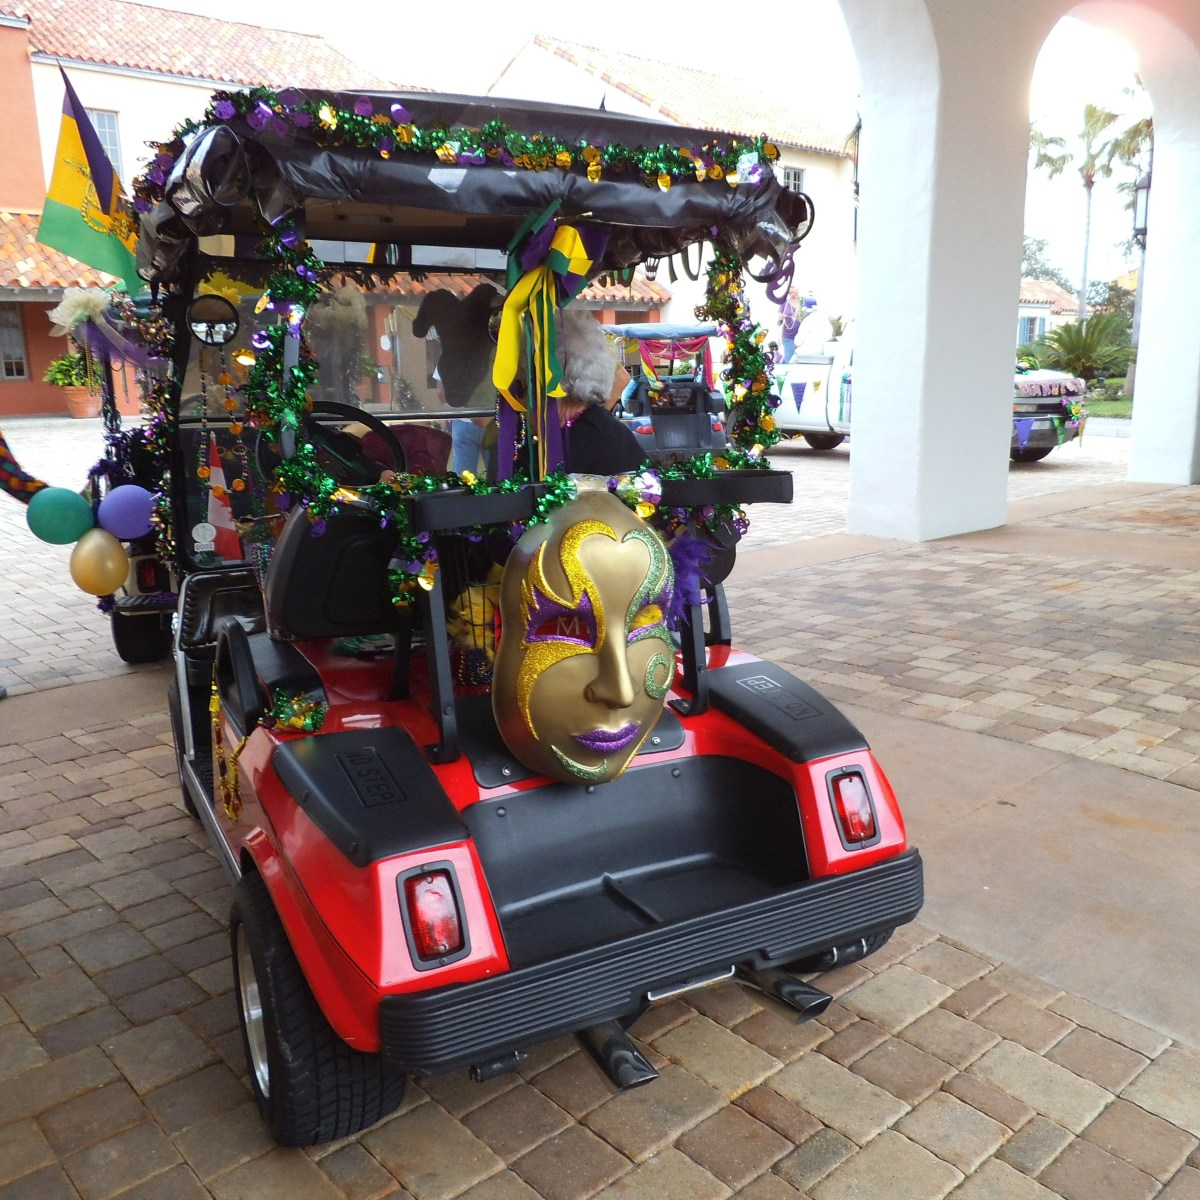 Every year, the retirement community that I live in has a Mardi Gras golf cart parade.